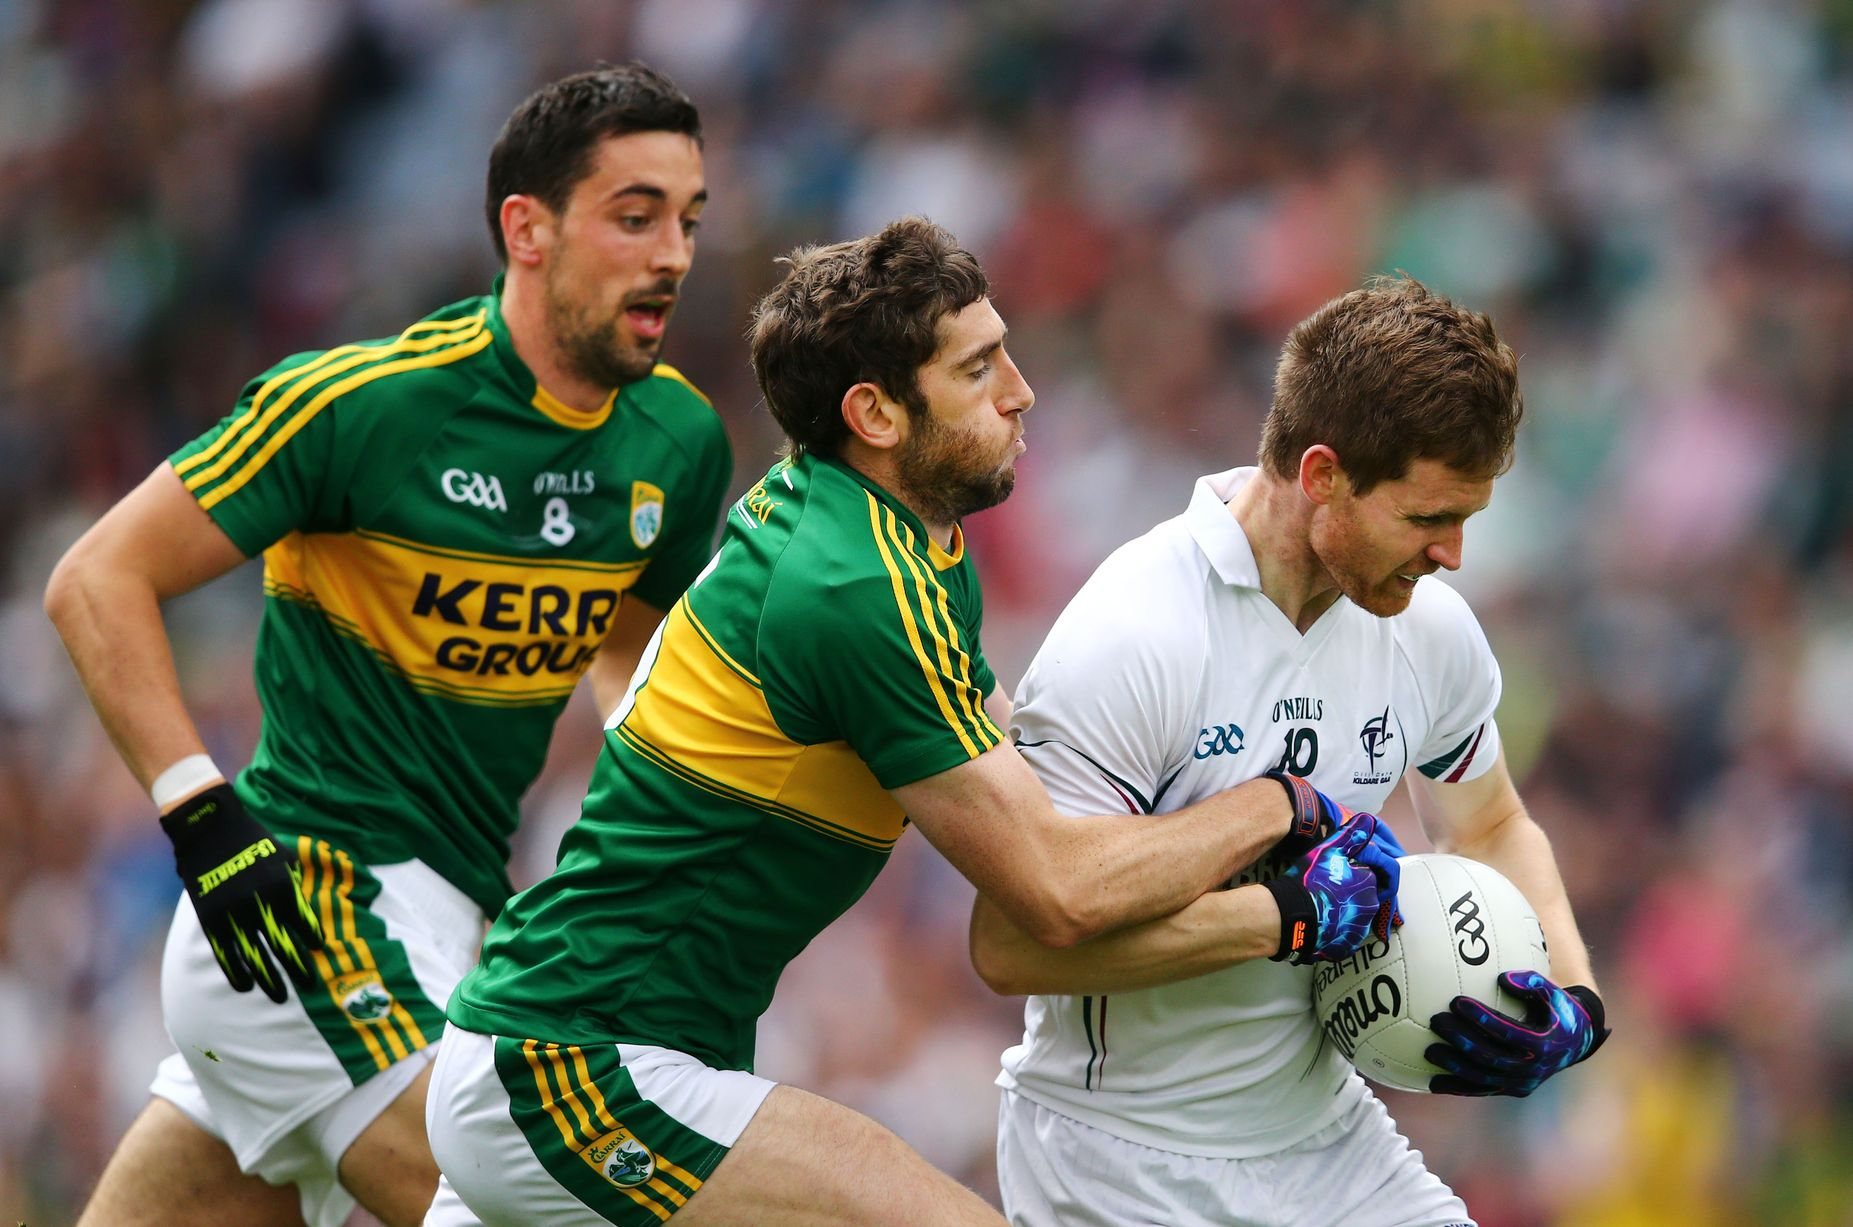 Kerry Vs Kildare.jpg